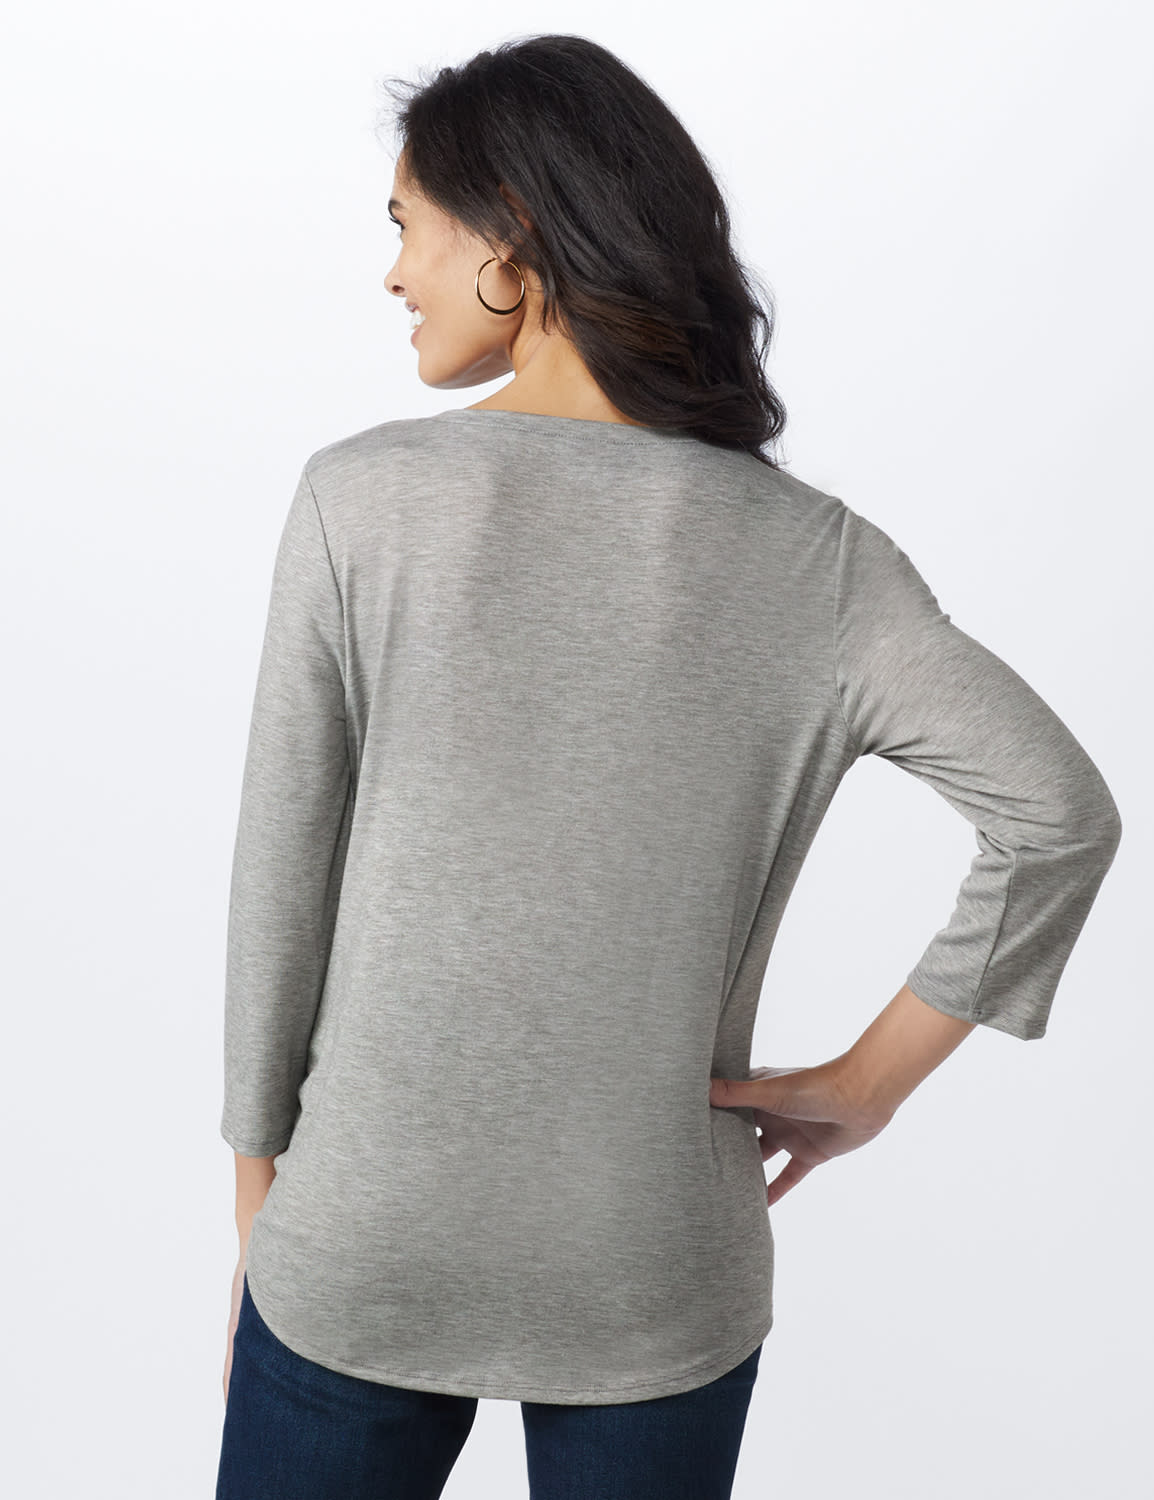 LOVE Matters Tie Front Screen Tee - Heather Grey - Back